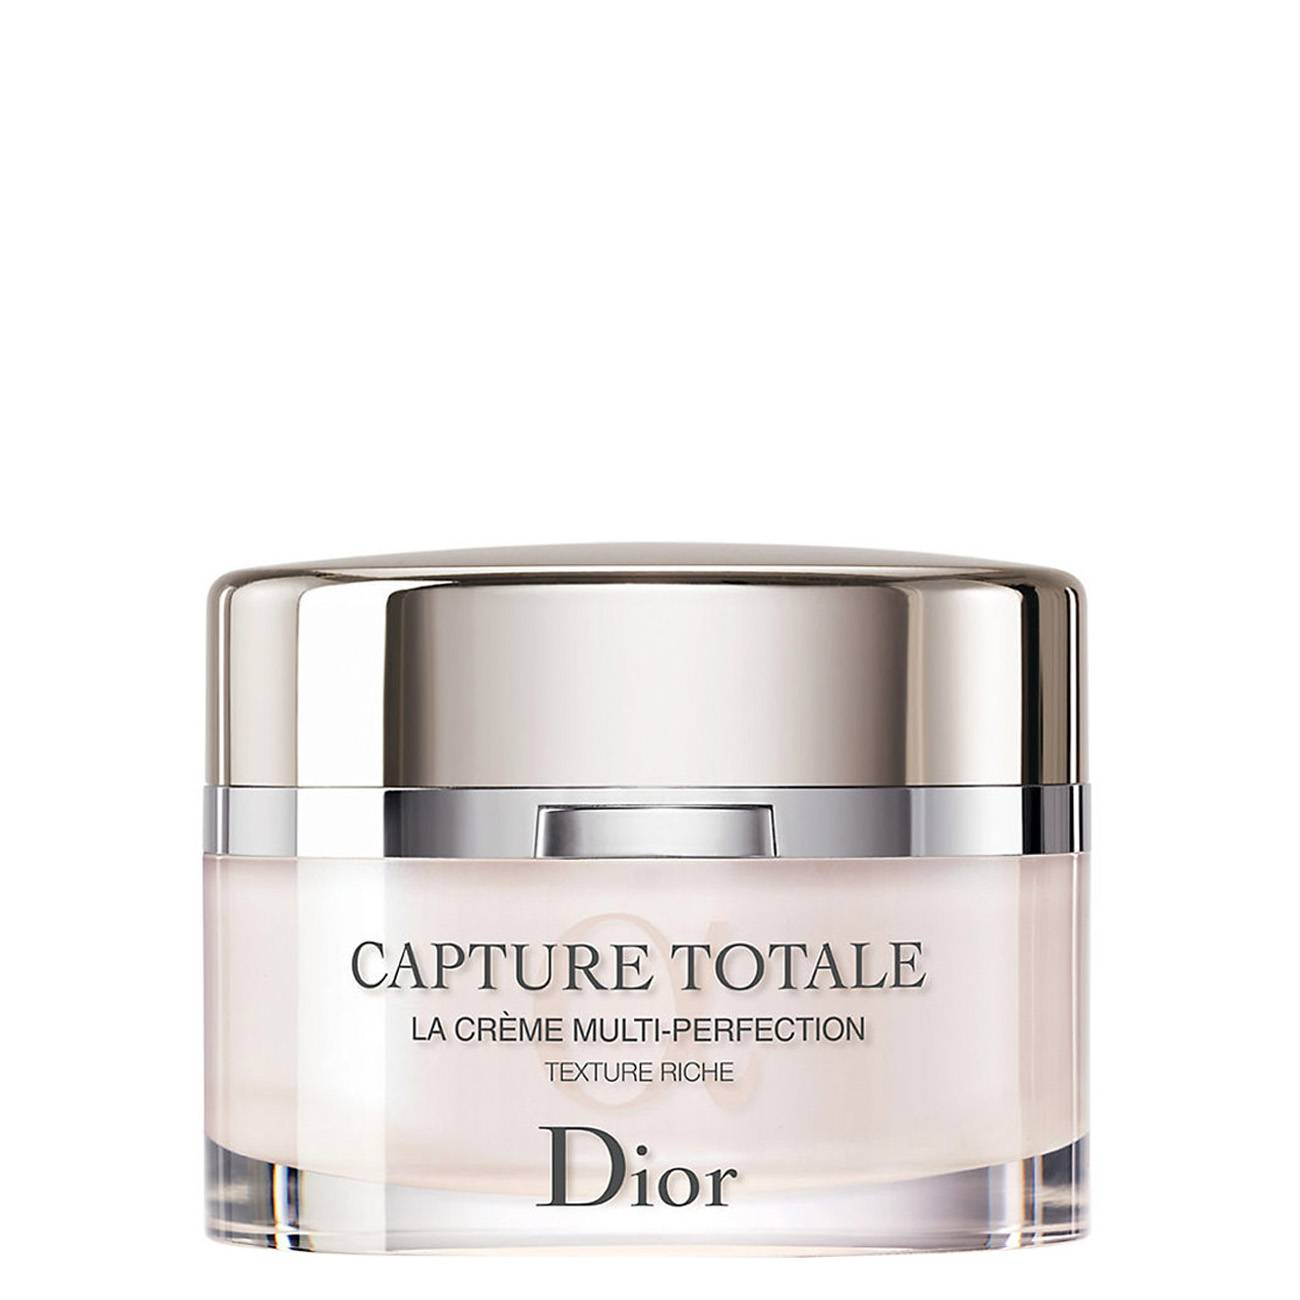 CAPTURE TOTALE TEXTURE RICH 60 Ml